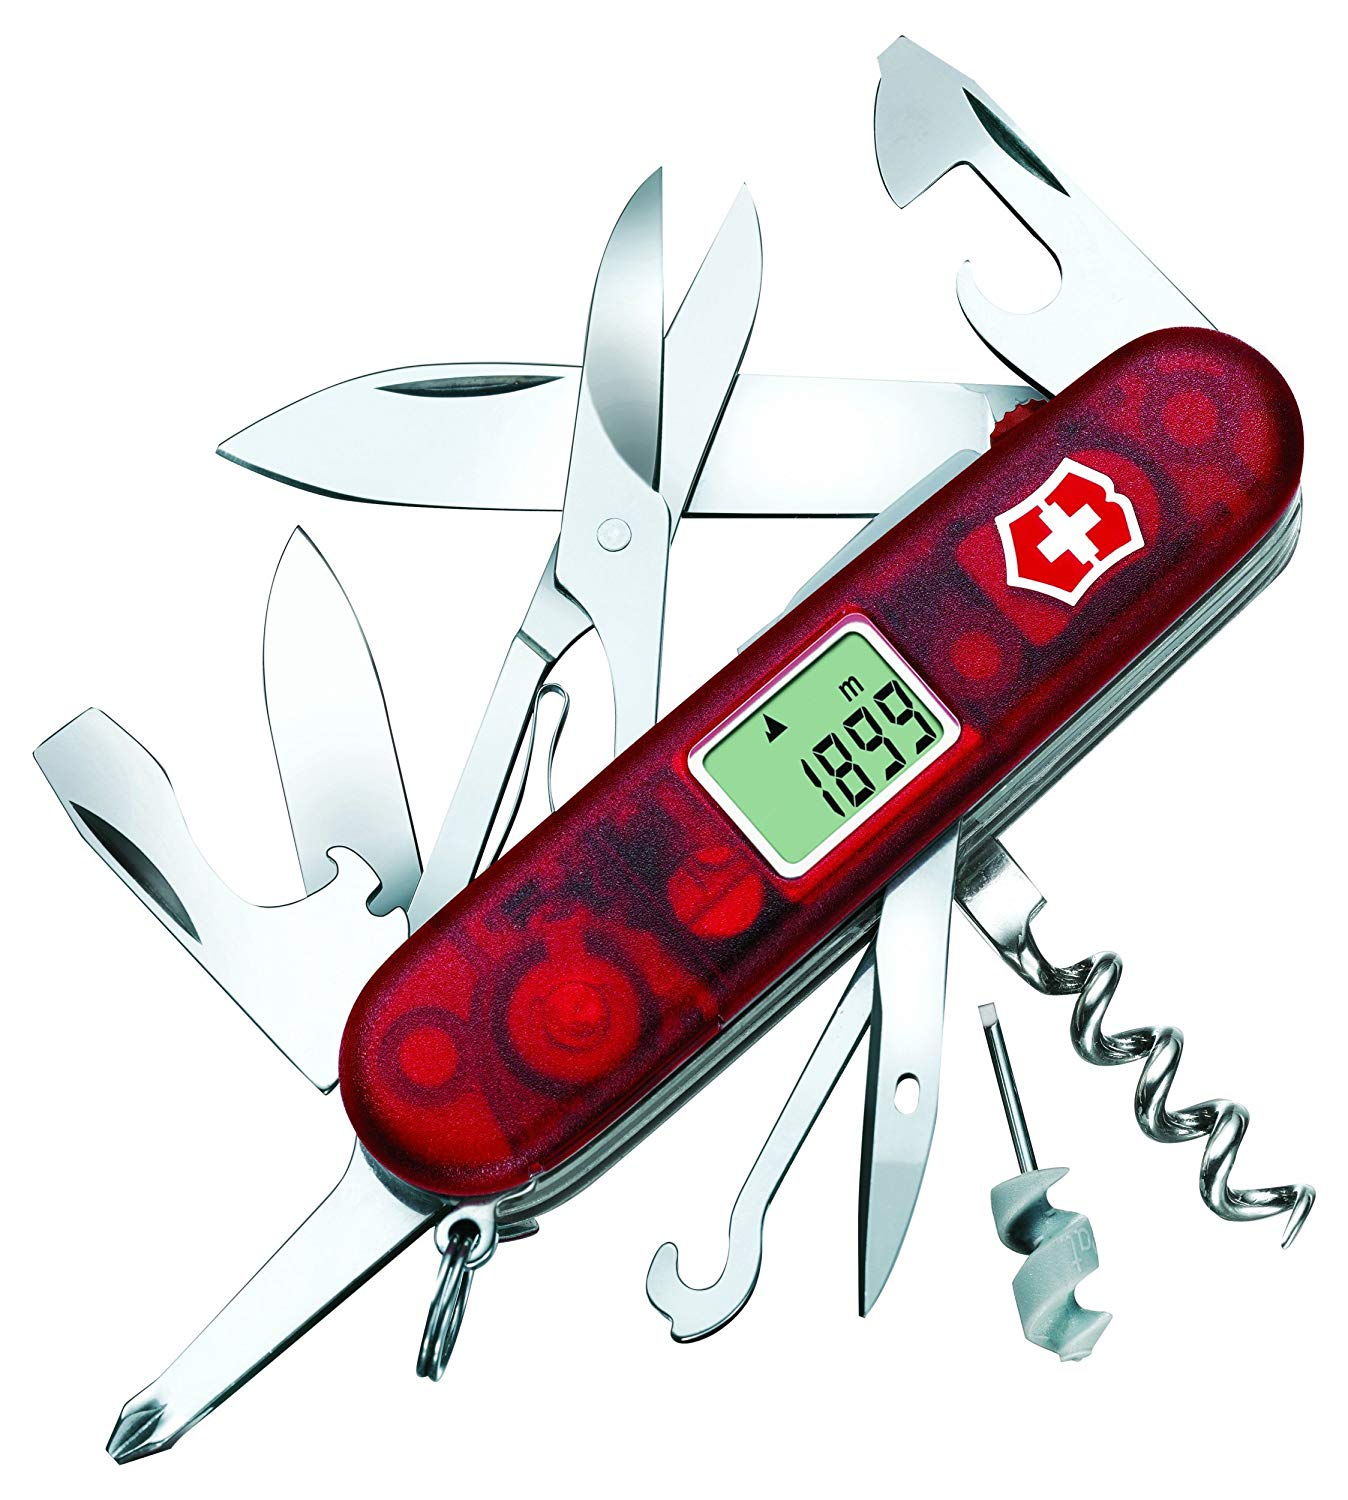 Victorinox Traveller Lite Multi-Tool (Red) as one of the essential camping gear